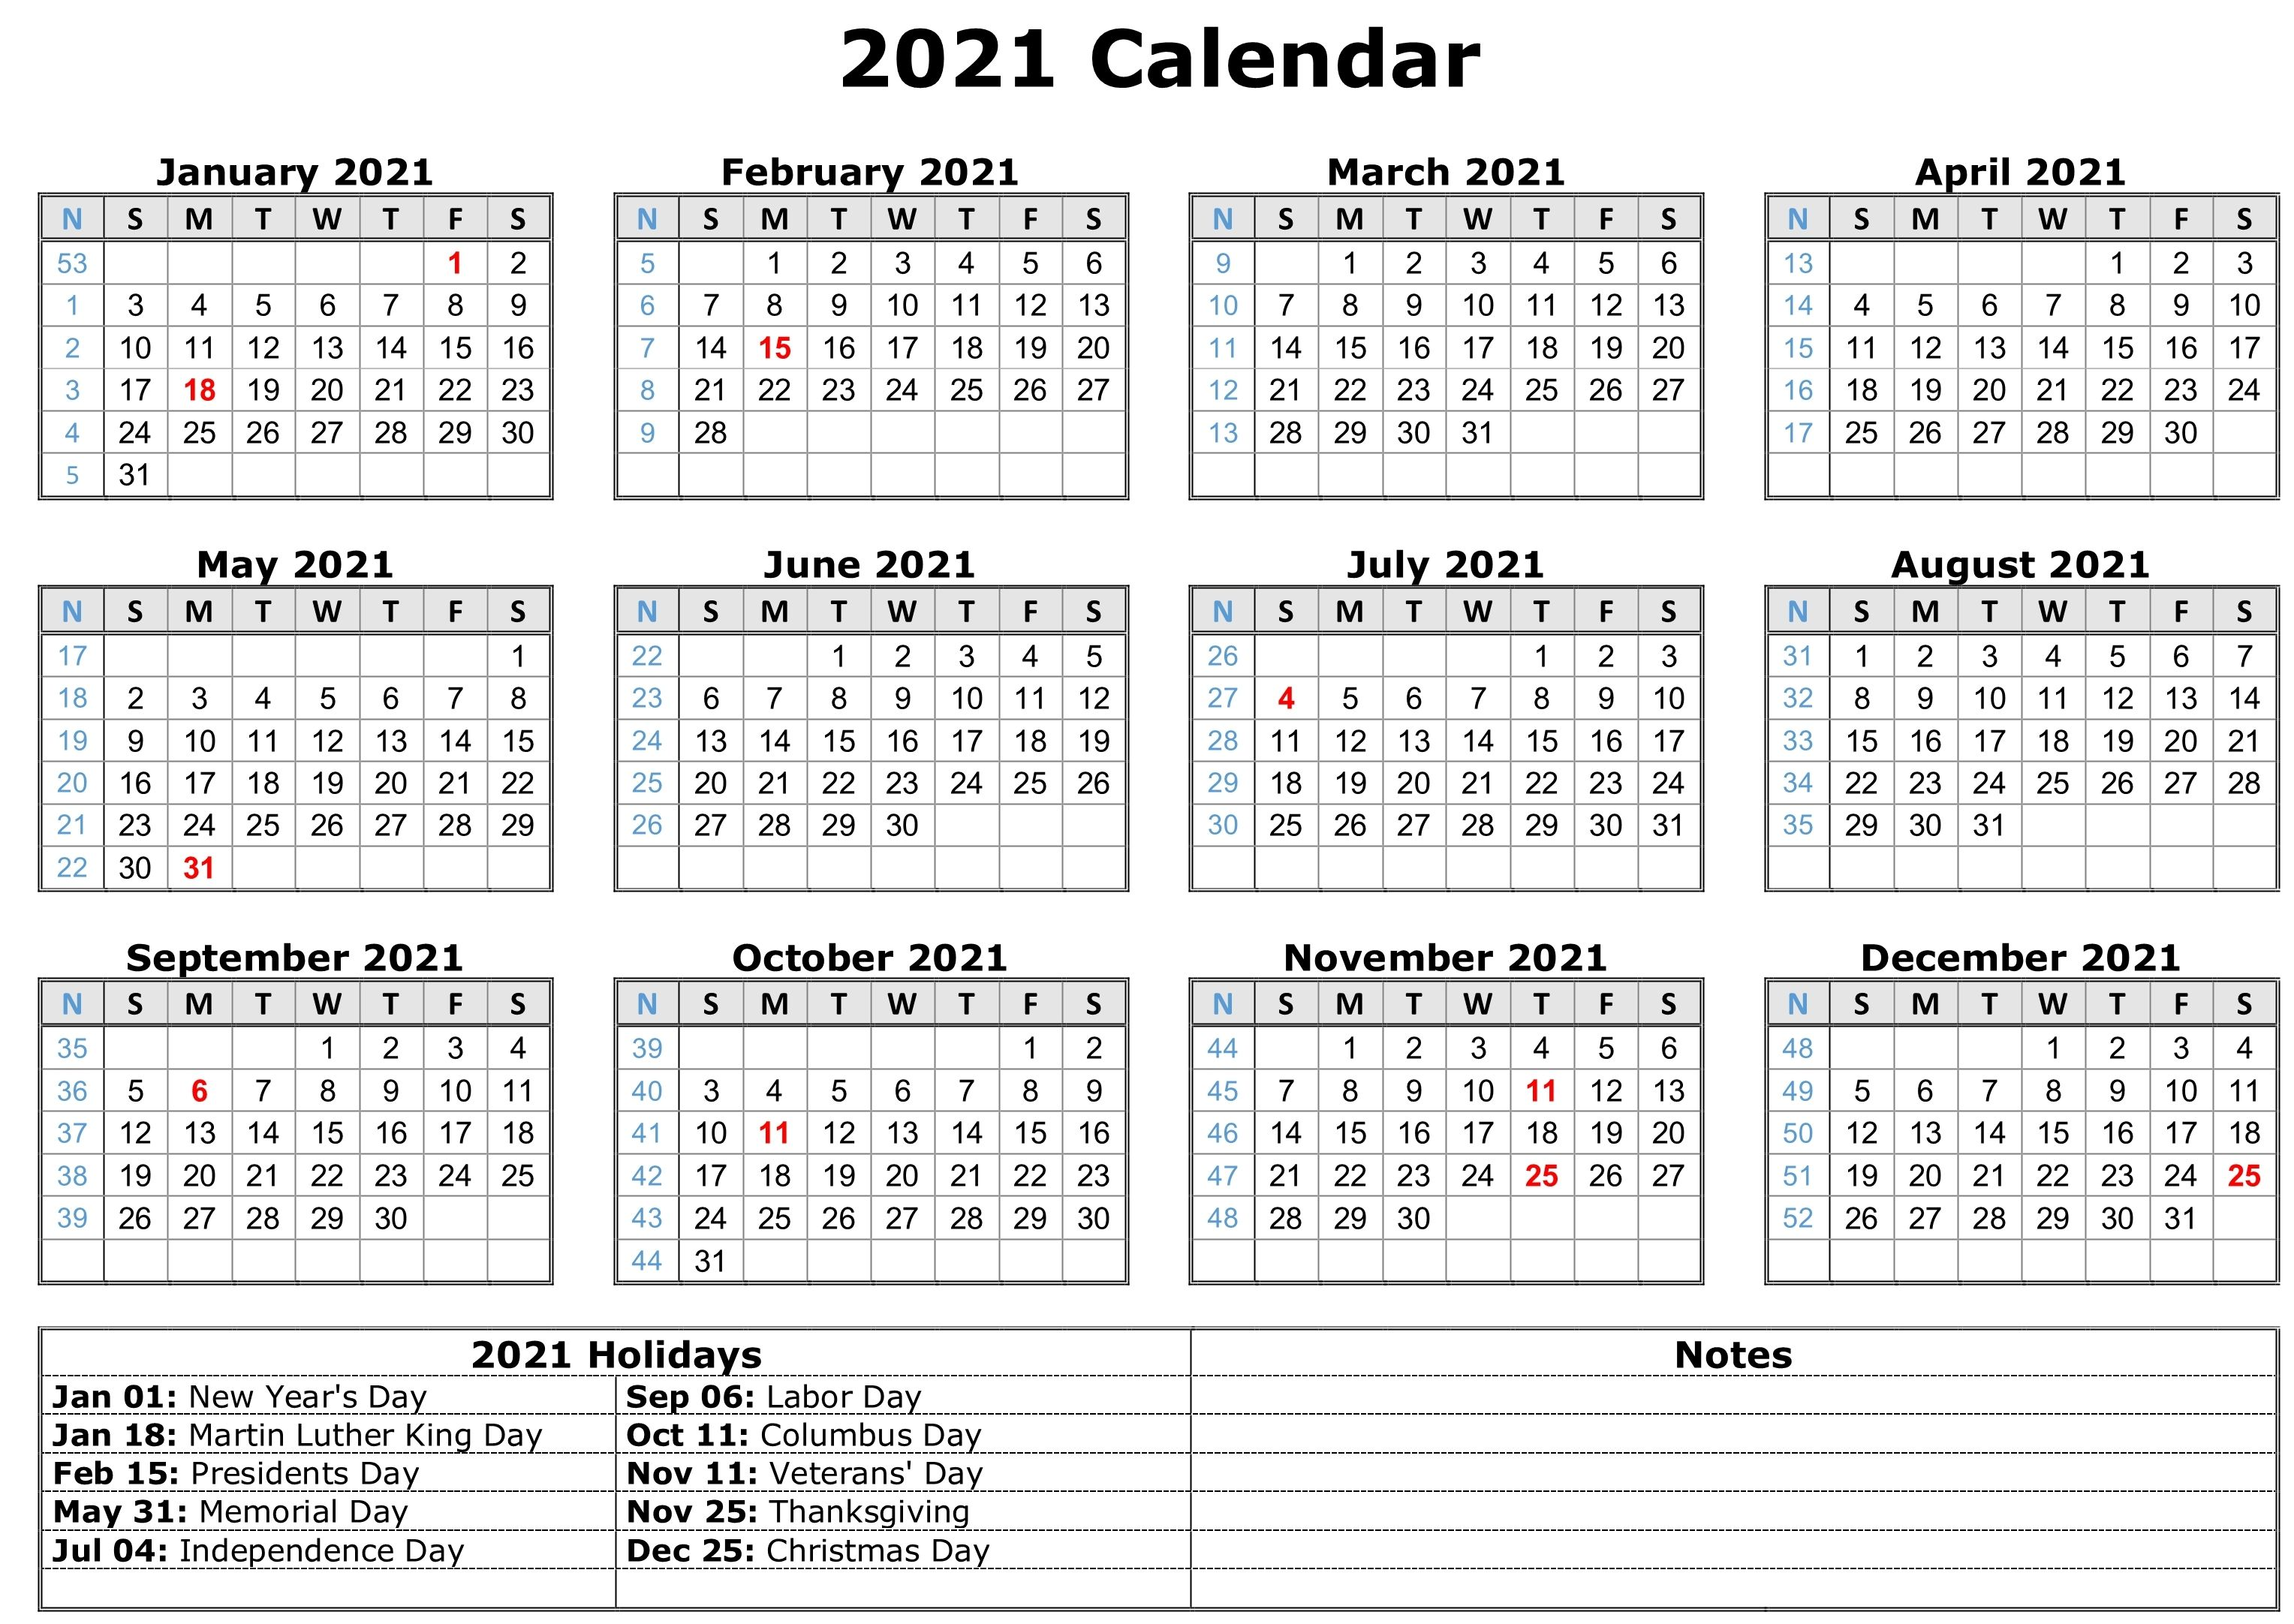 2021 Calendar with Holidays | Calendar template, Free printable